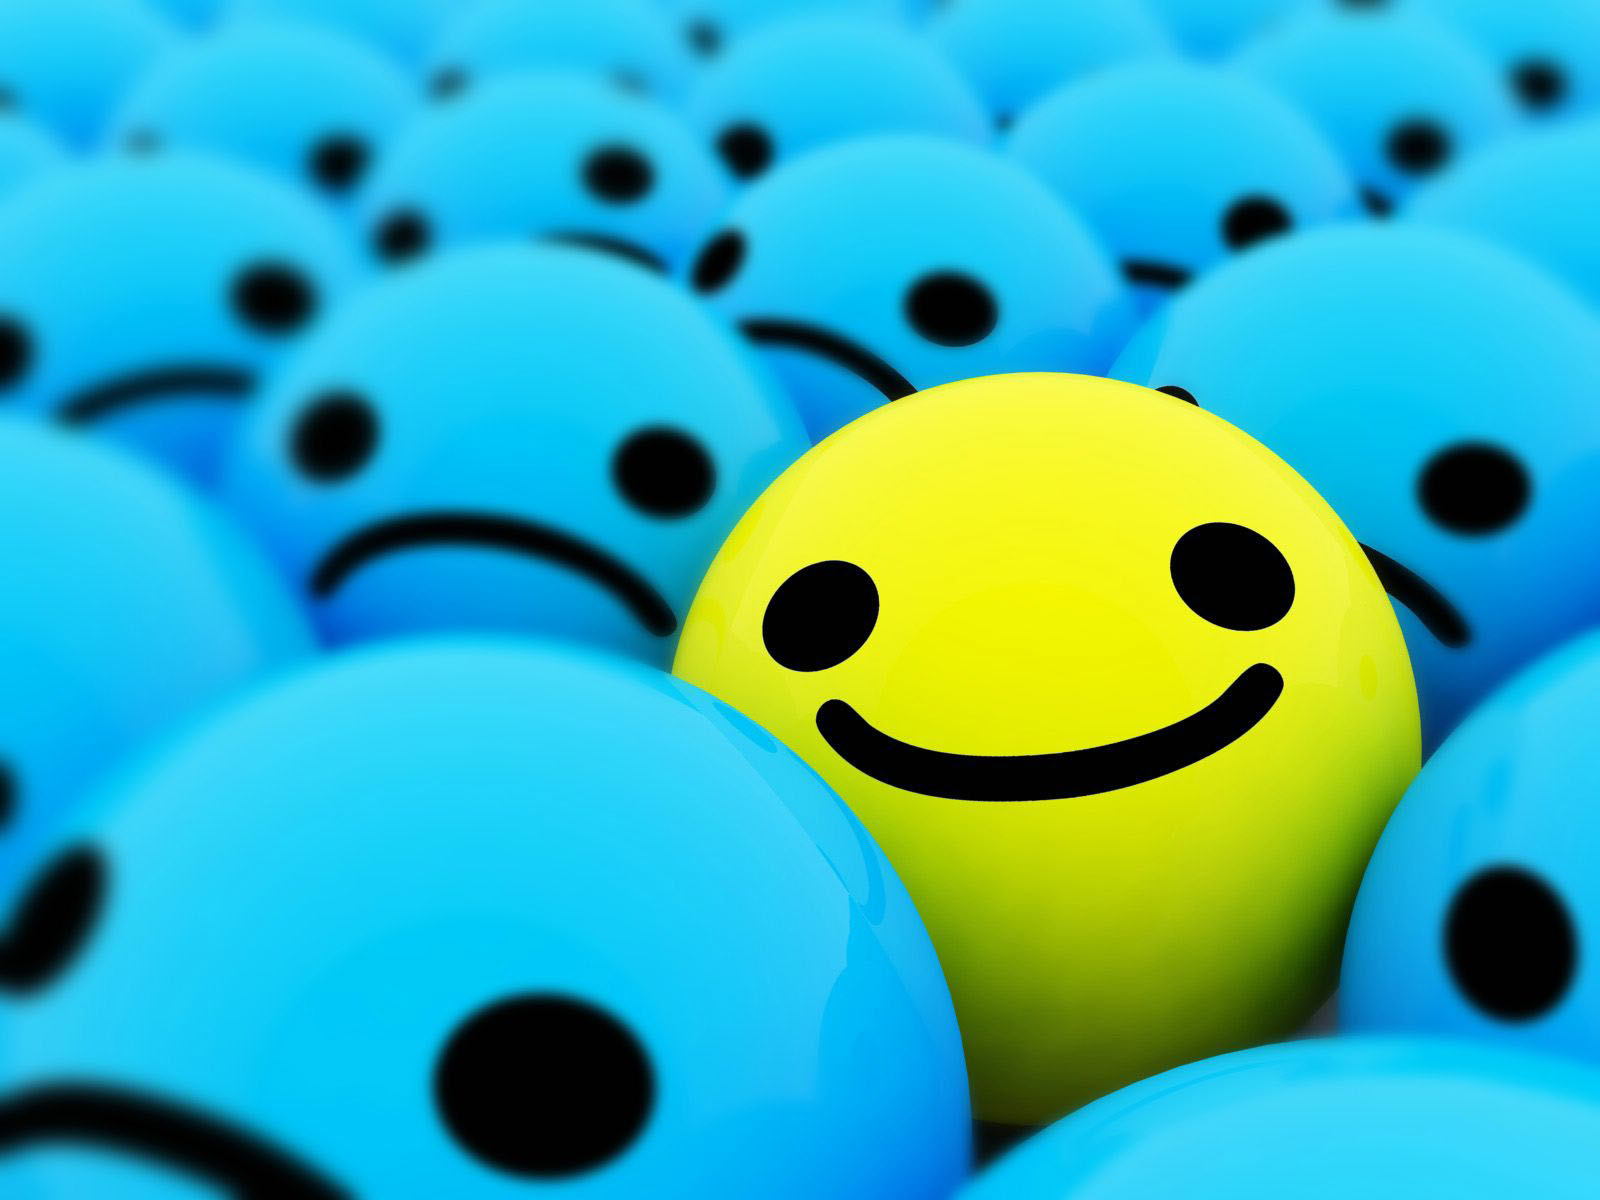 Happy Smiley Face in a Crowd 141.38 Kb